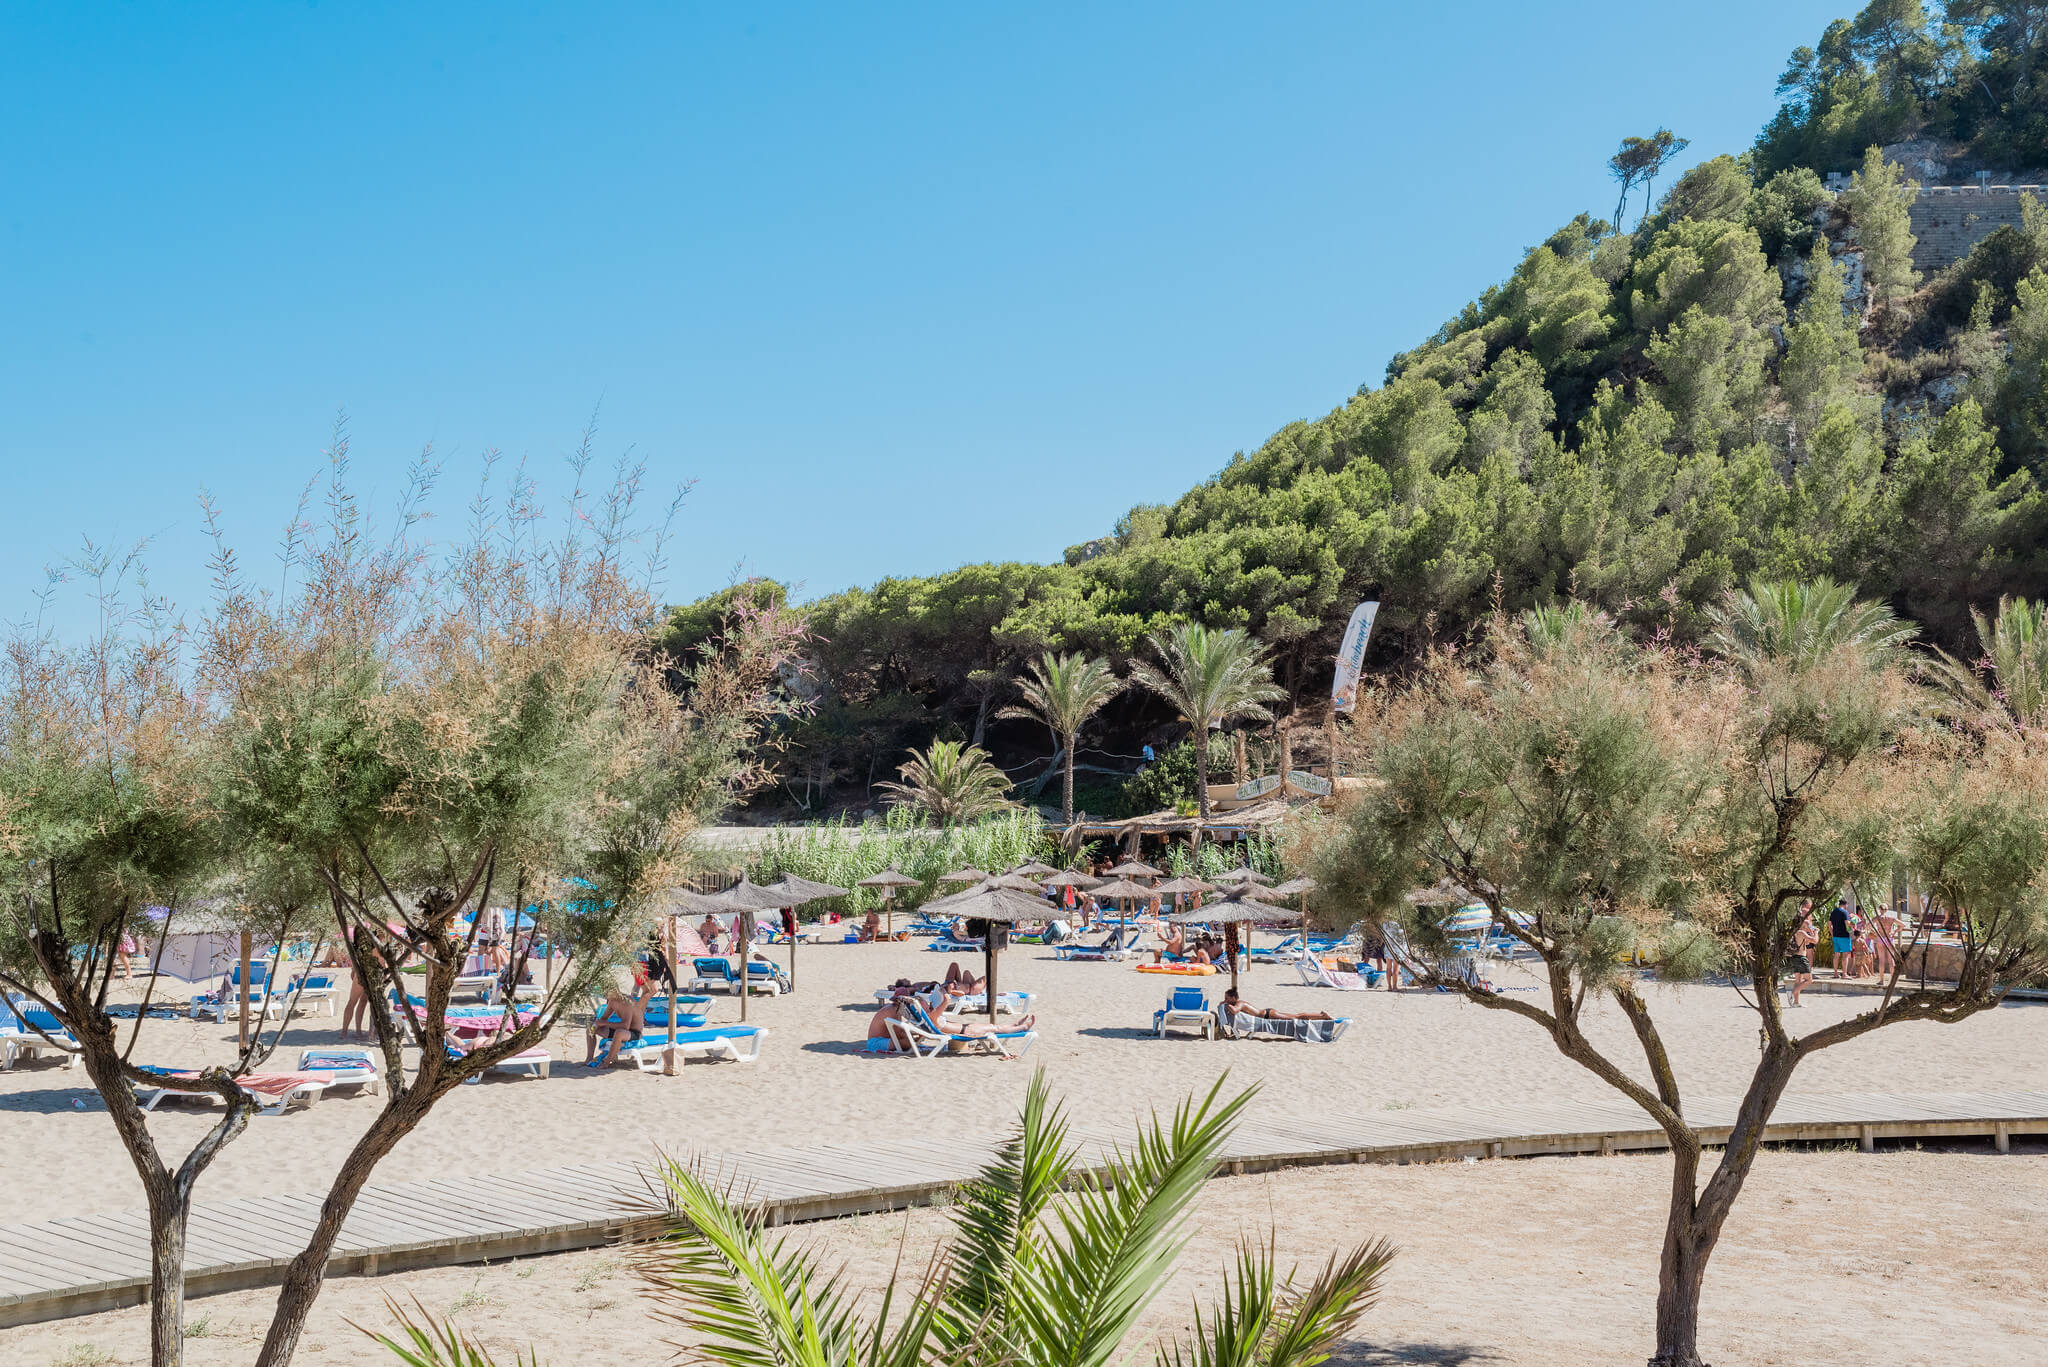 https://www.white-ibiza.com/wp-content/uploads/2020/03/ibiza-beaches-cala-san-vicente-06.jpg